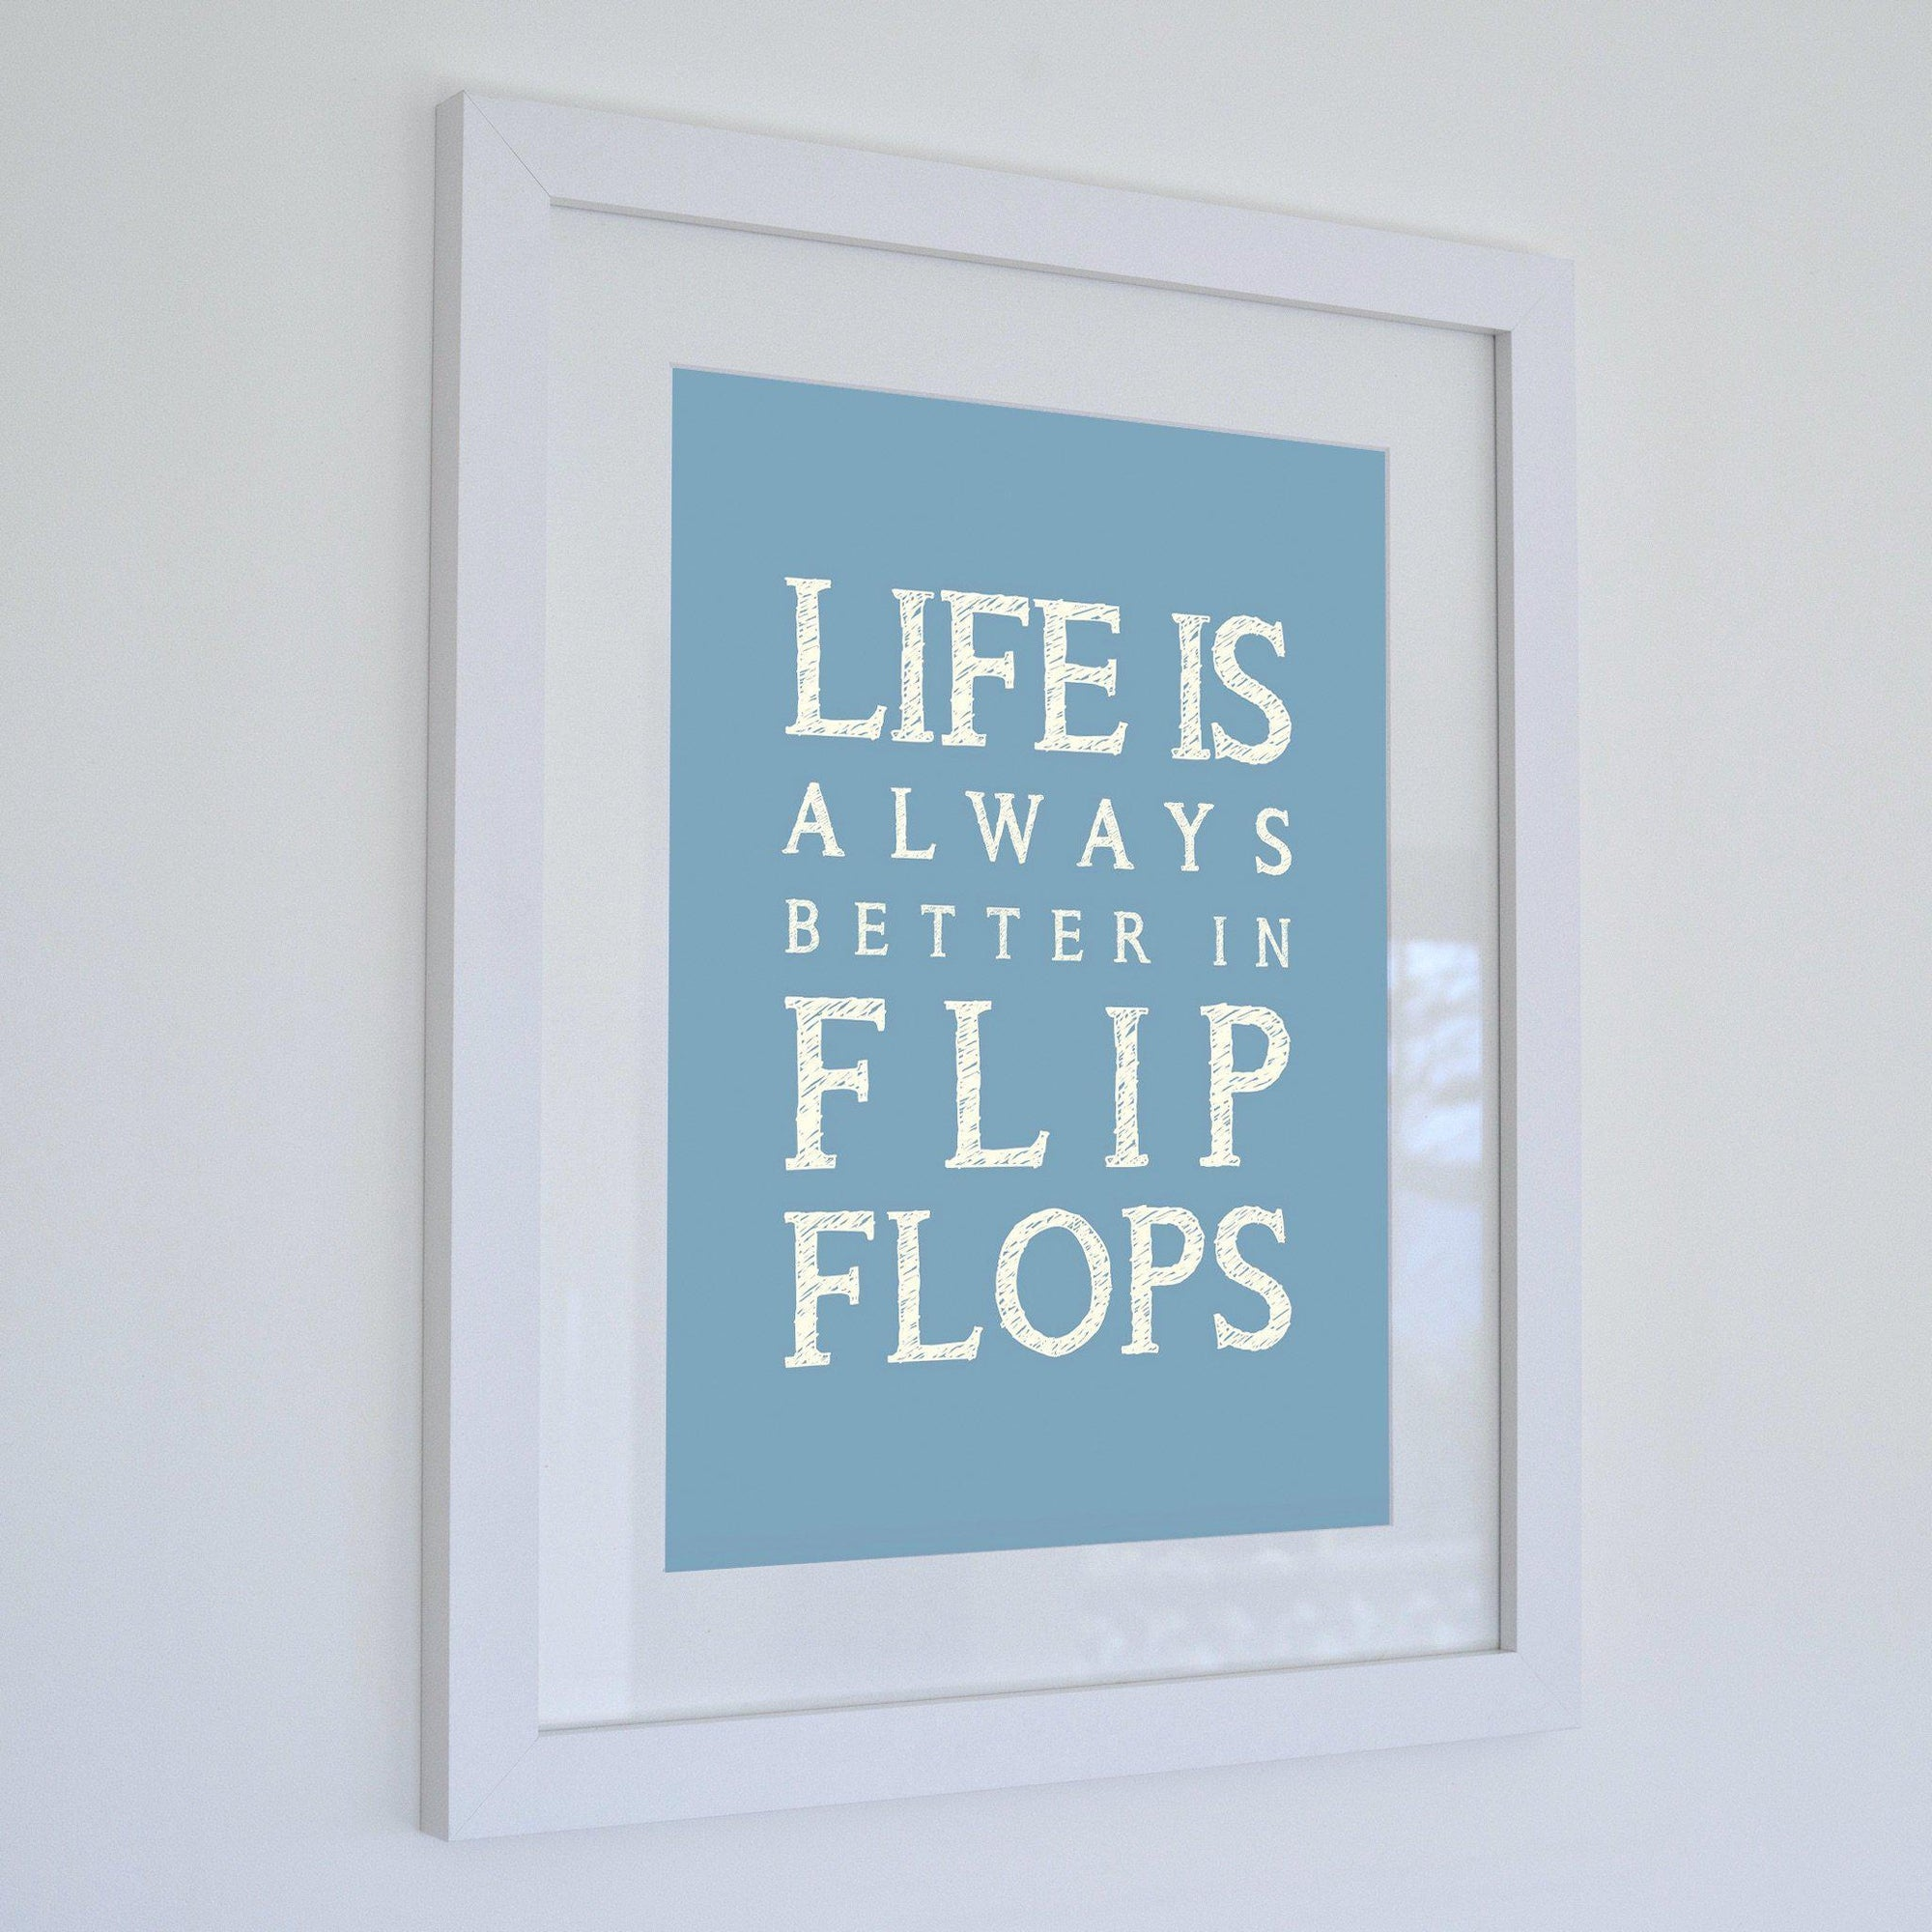 Life is Better in Flip Flops Typographic Framed Print- Coastal Wall Art /Poster-SeaKisses